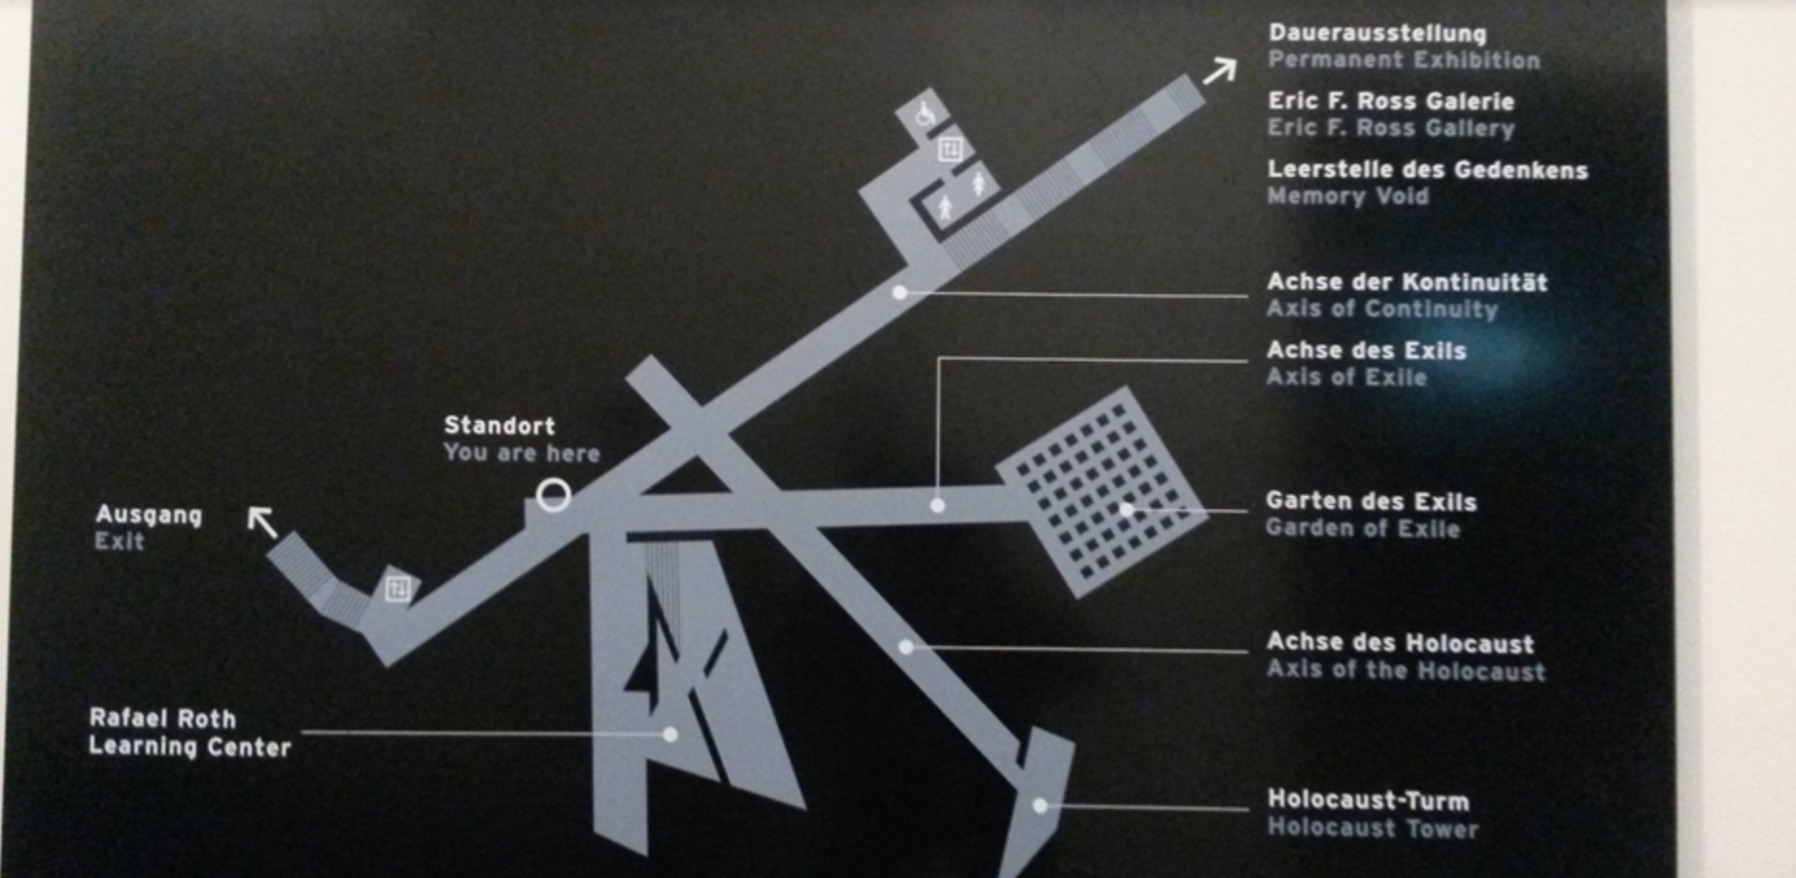 The map of the new museum, showing the three Axes.